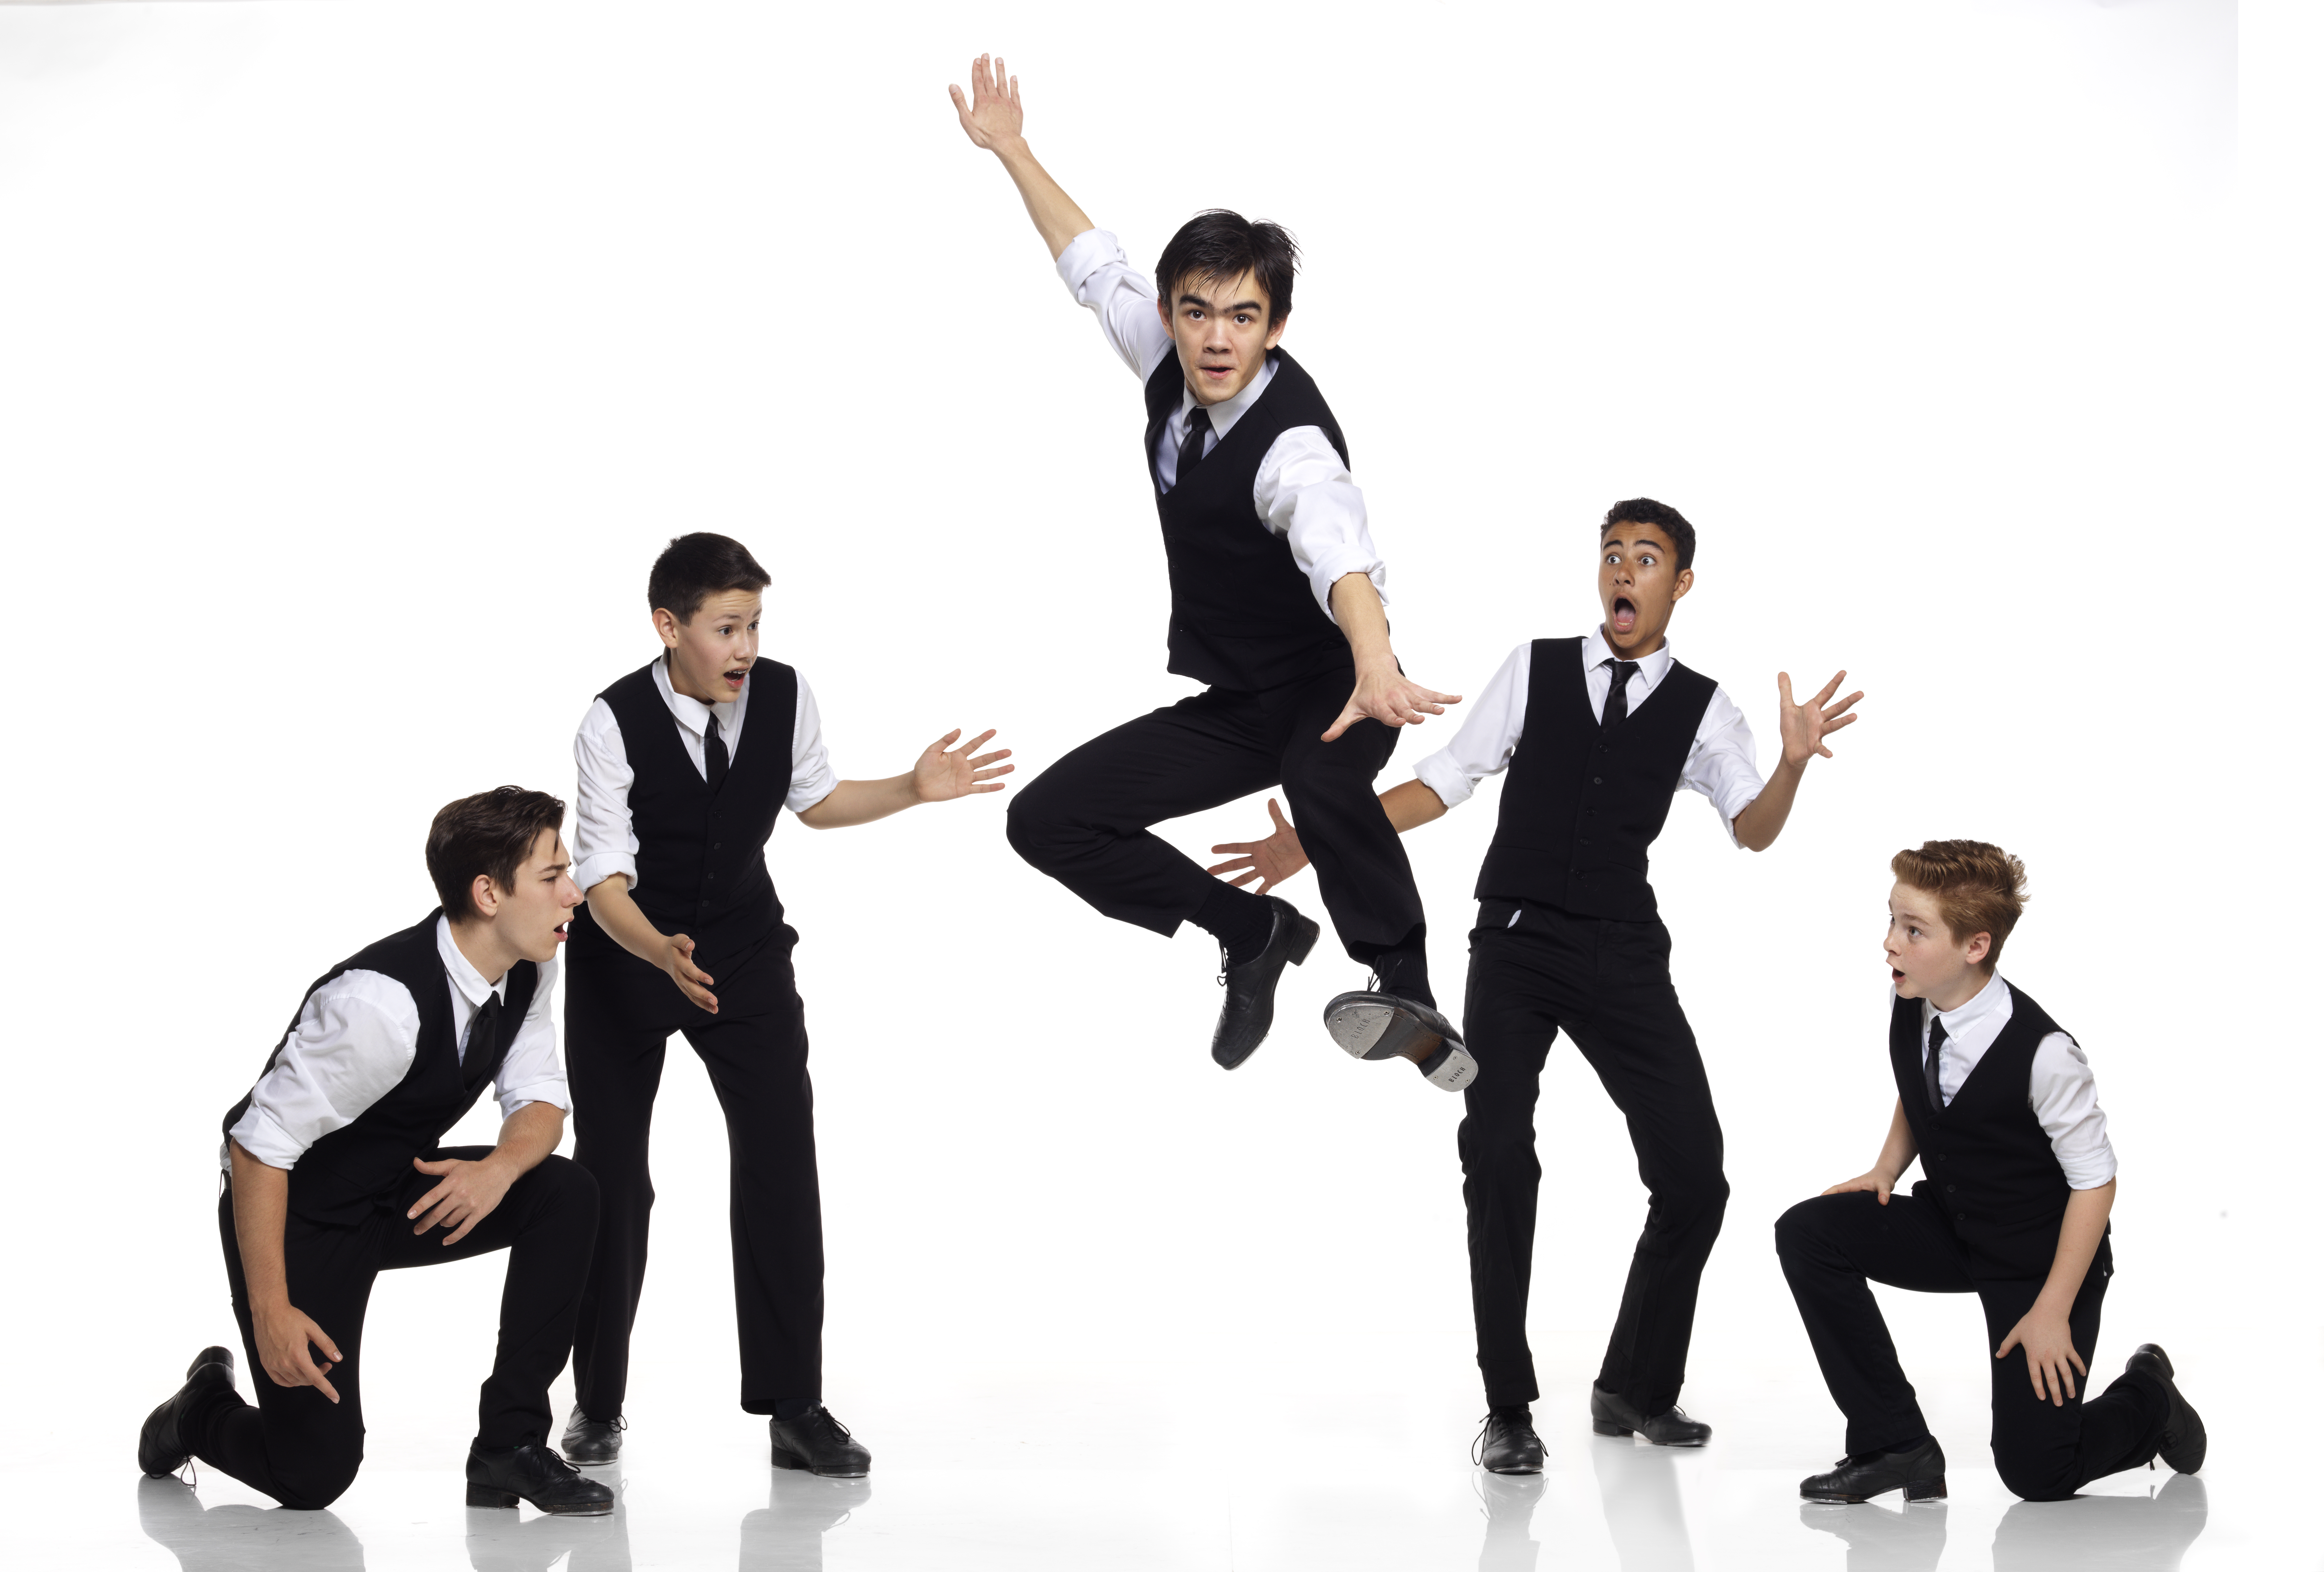 Boys in tap dance shoes